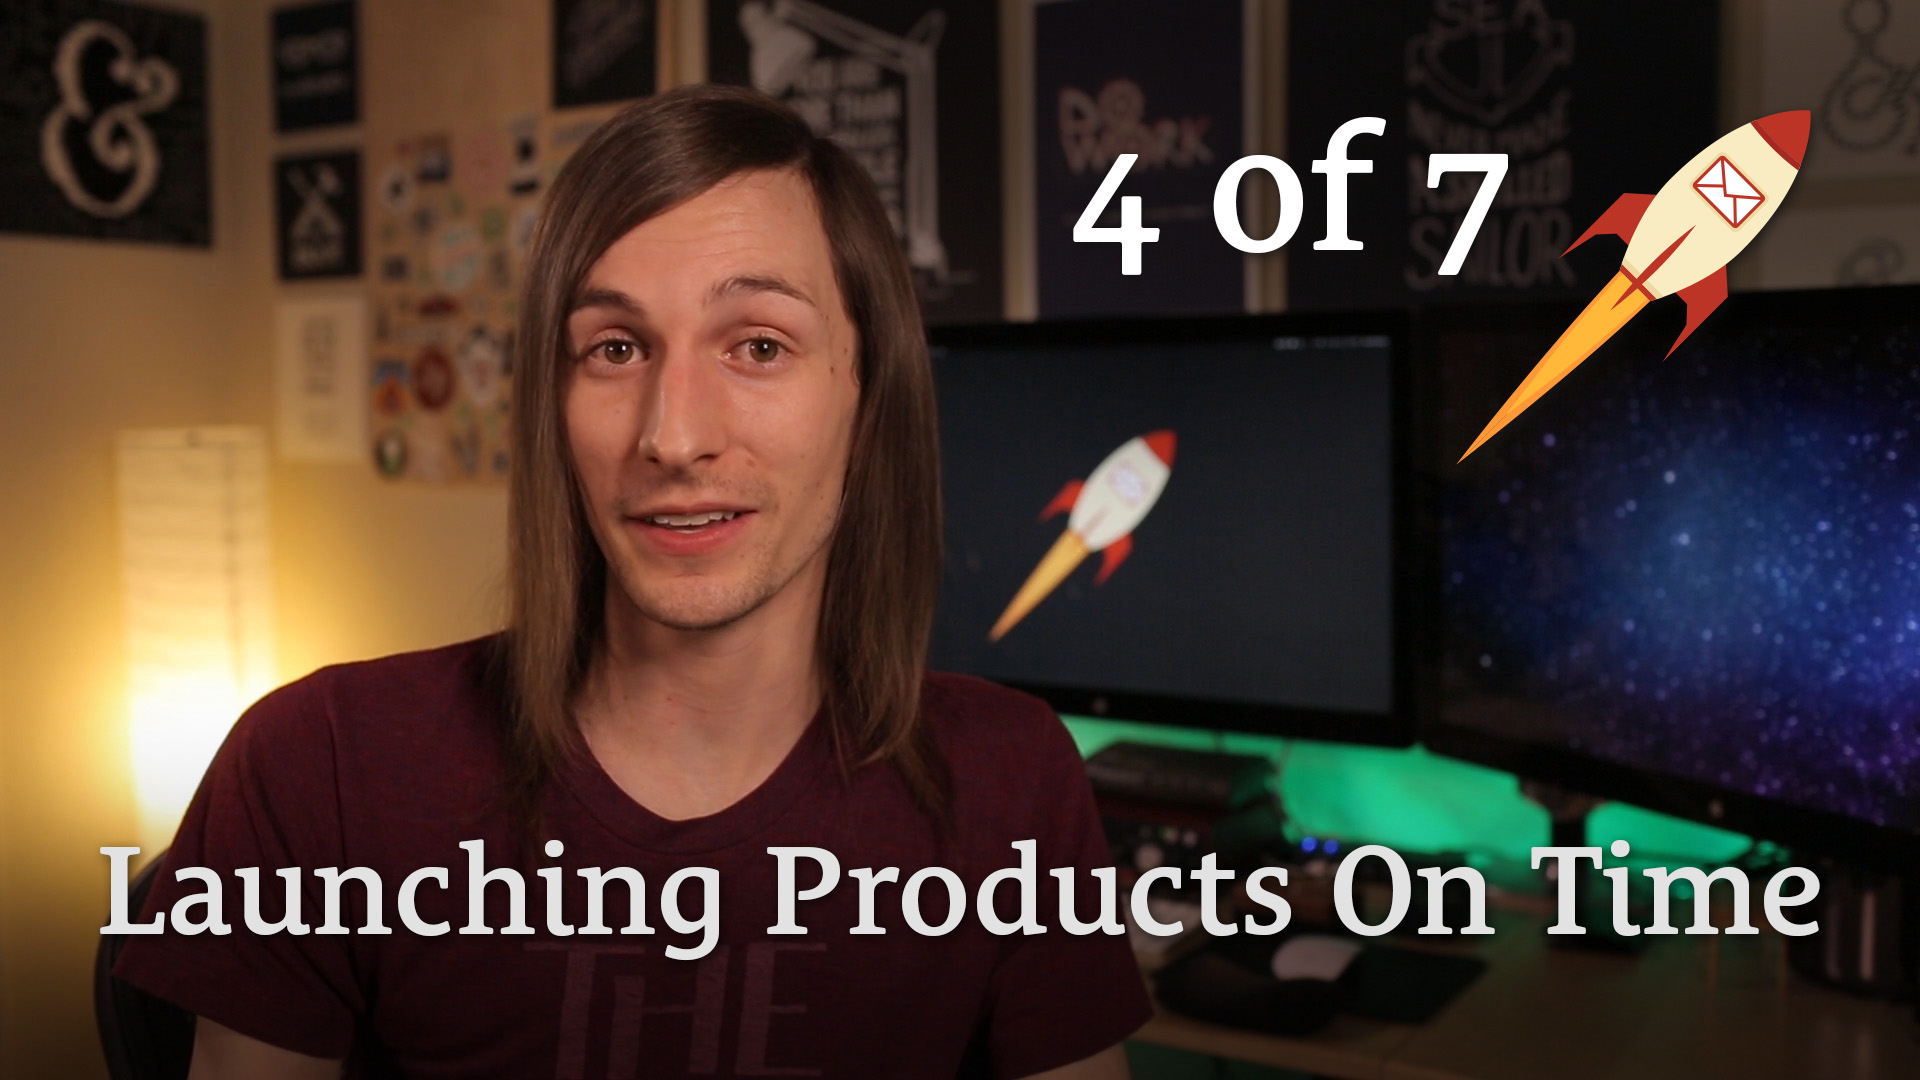 107: (Part 4 of 7): Launch Your Product On Time by Using a Deadline